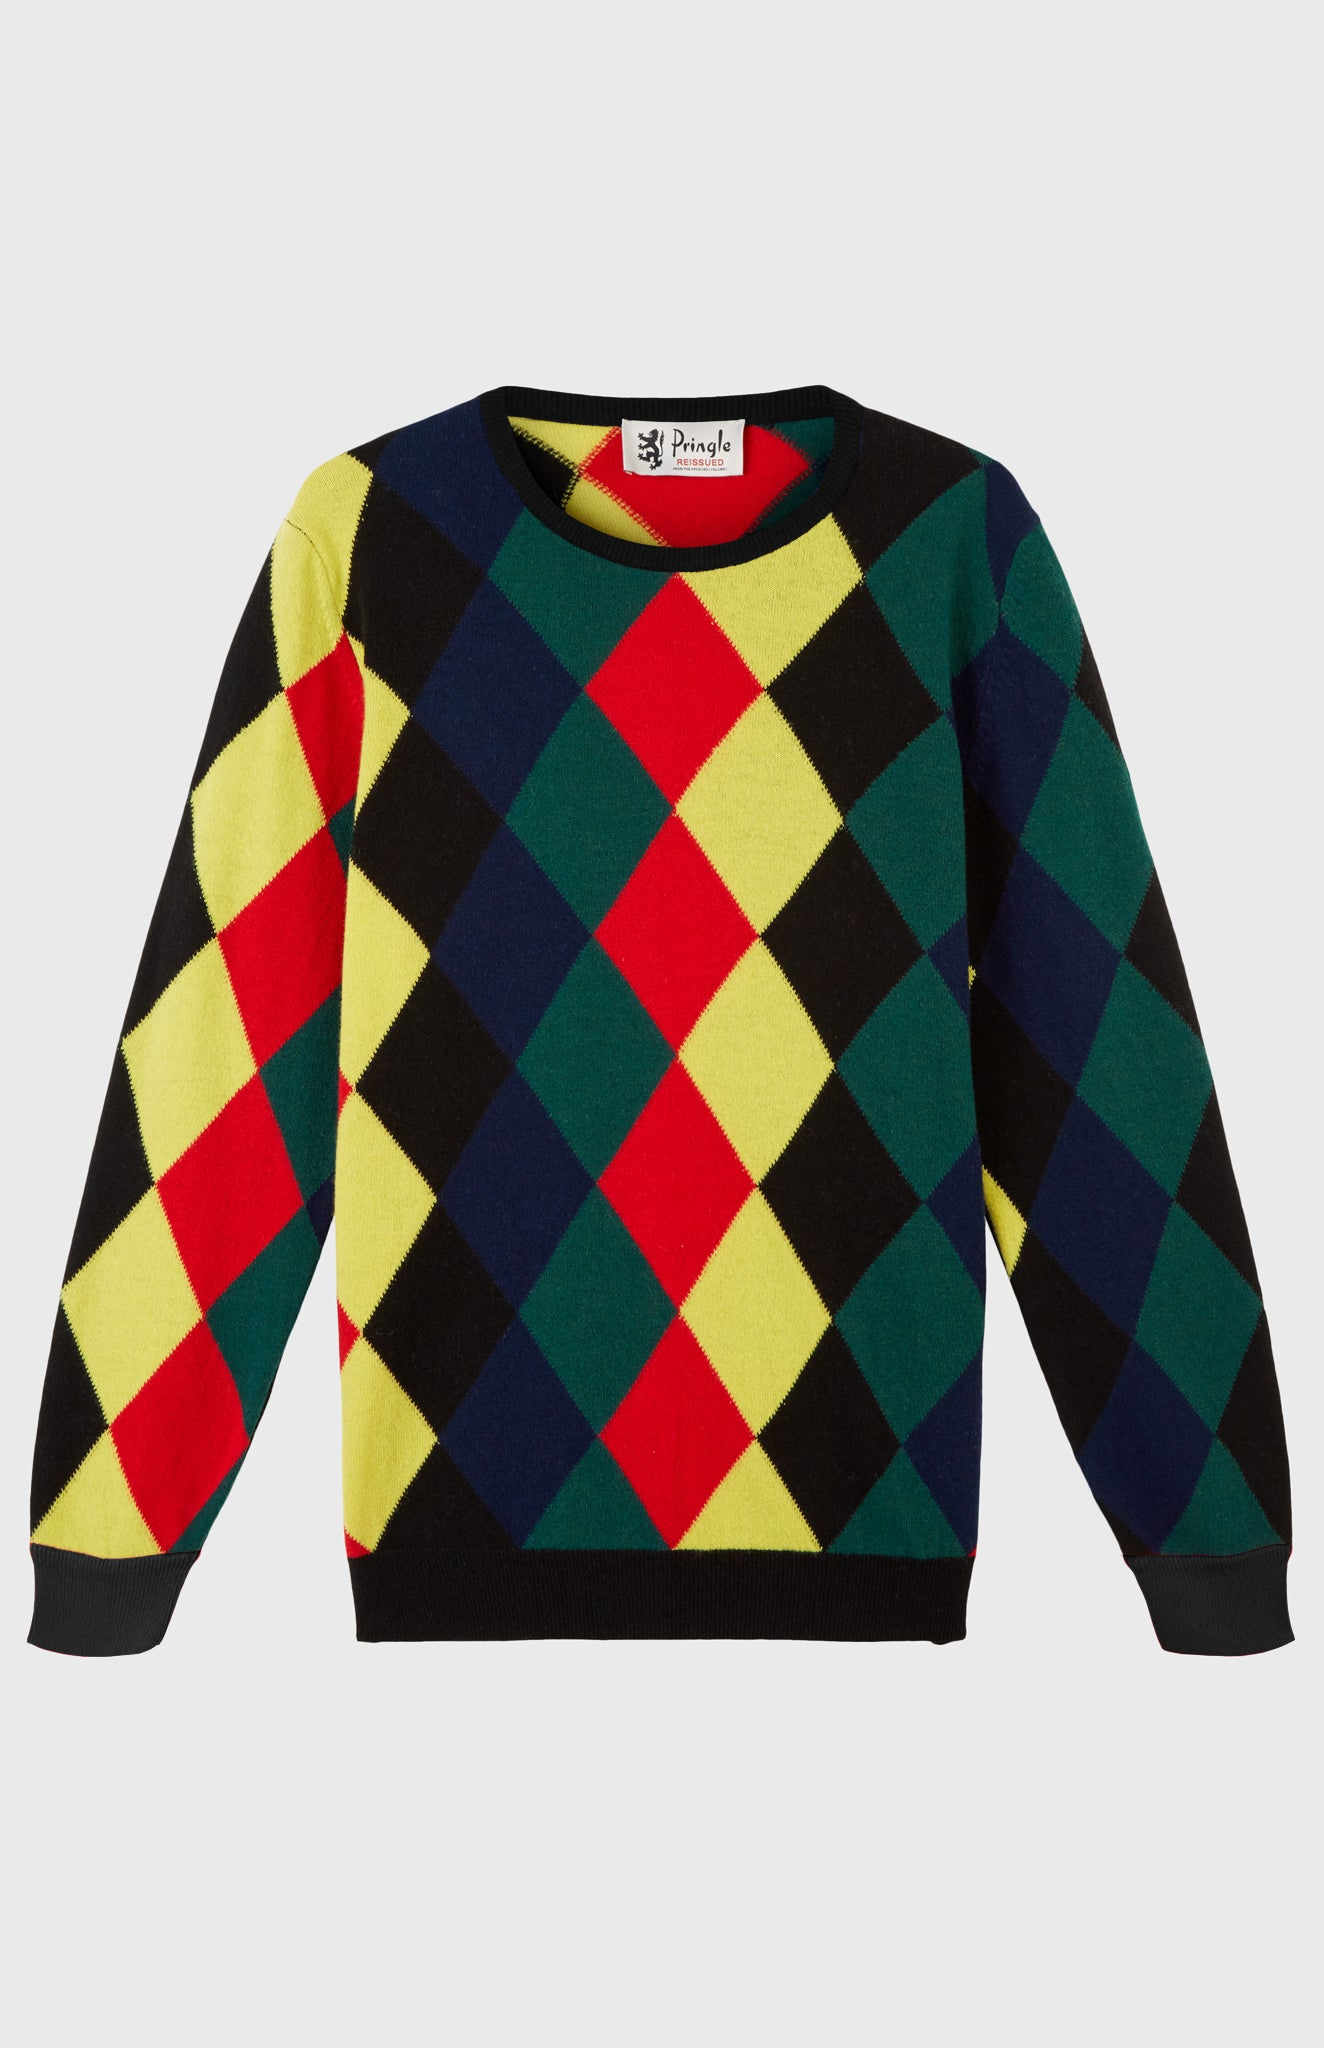 Pringle Reissued Harlequin Argyle Jumper